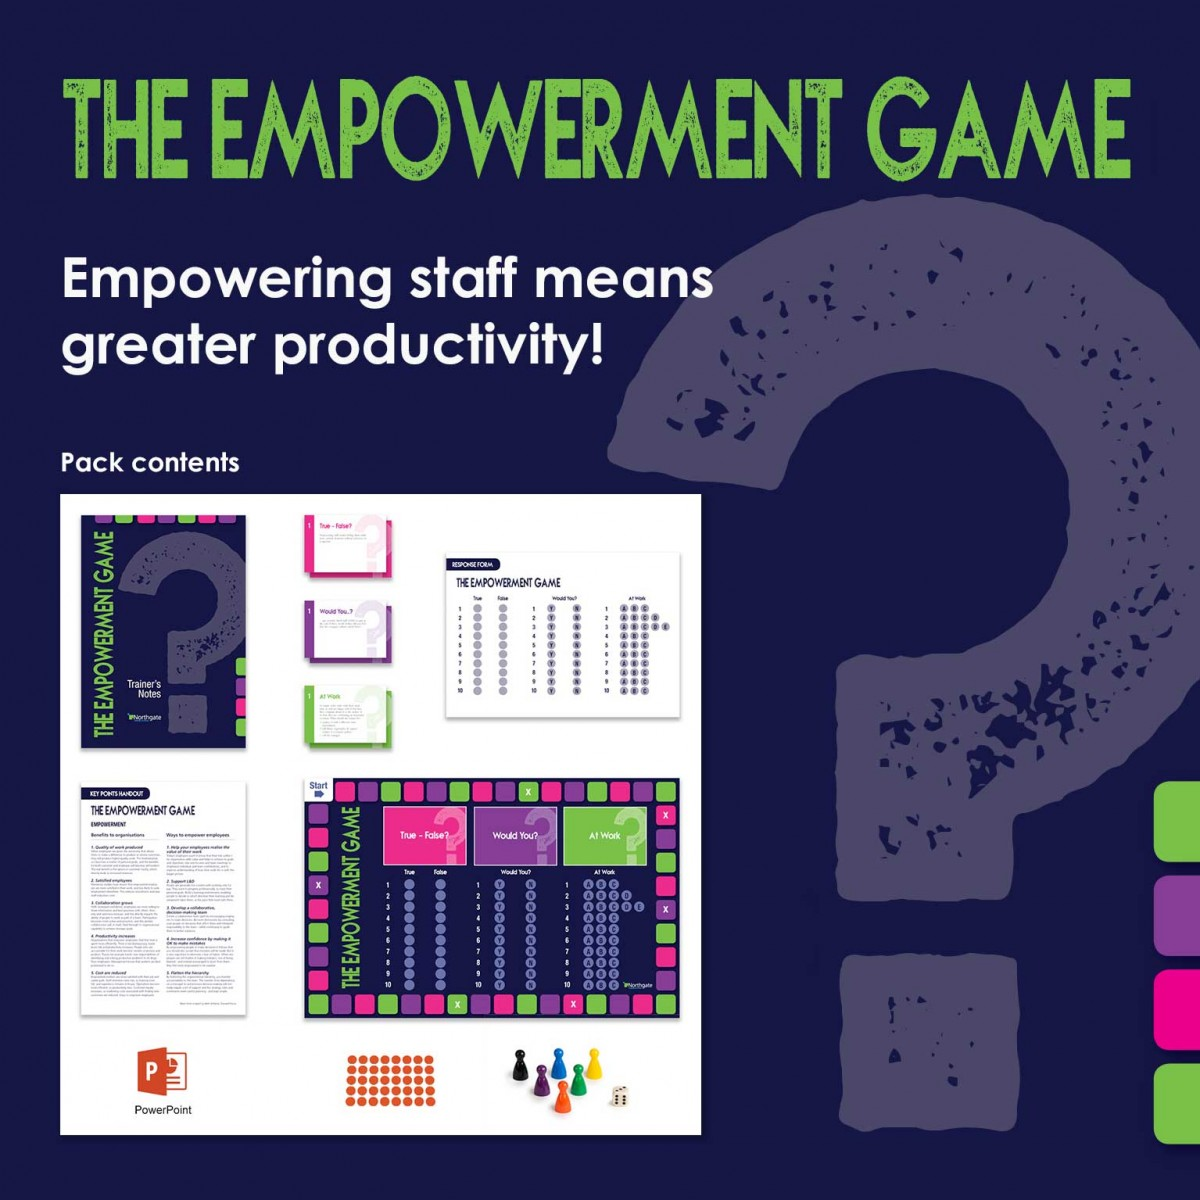 The Empowerment Game